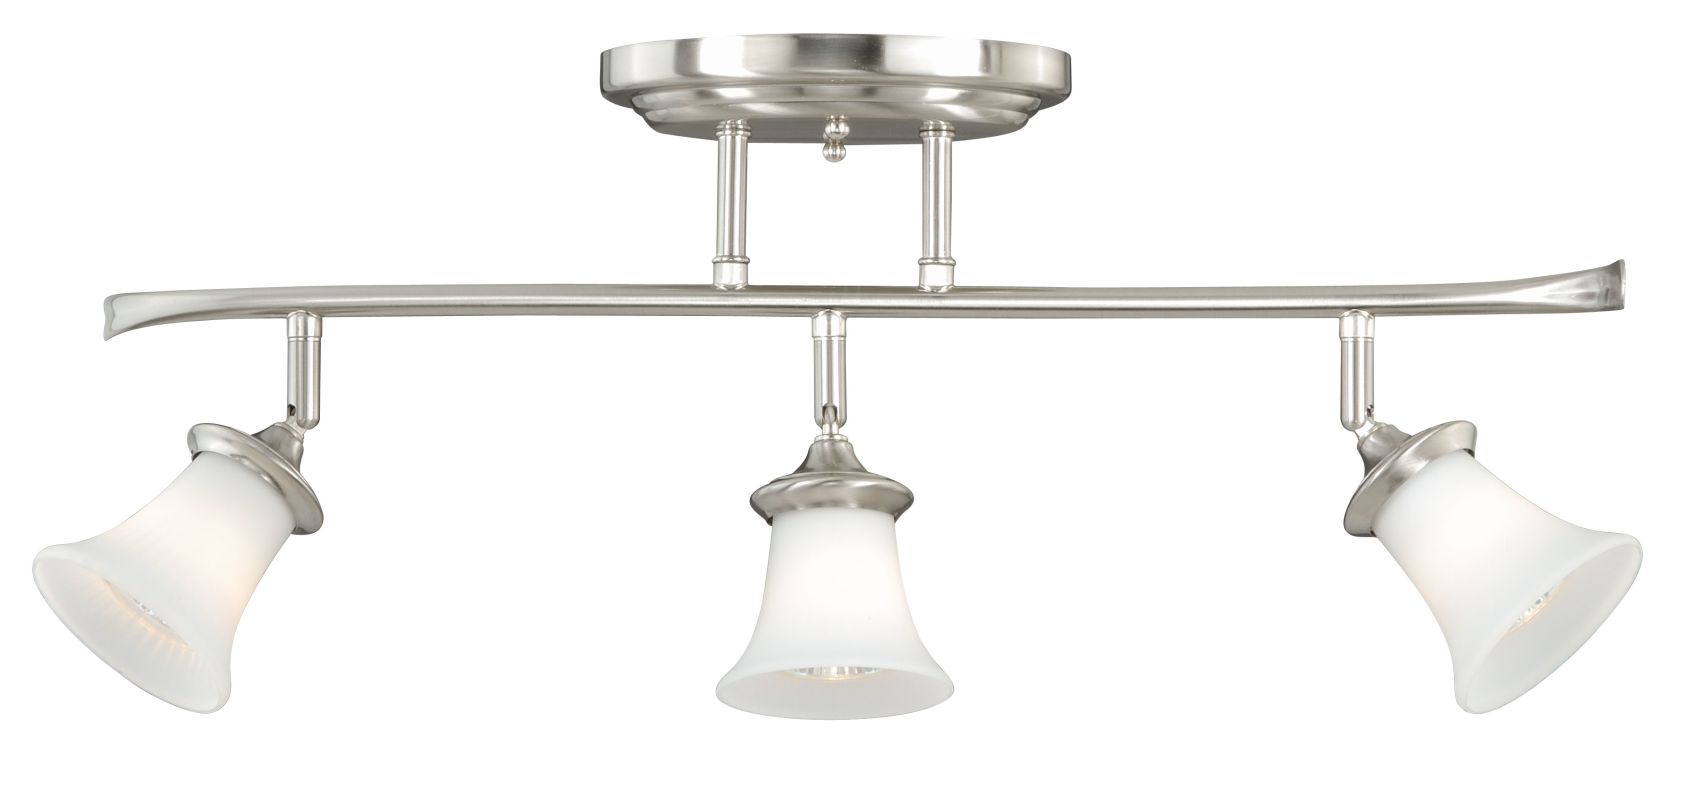 Vaxcel Lighting C0012 Sonora 3 Light Flush Mount Indoor Ceiling Sale $130.00 ITEM: bci2024127 ID#:C0012 UPC: 884656727593 :